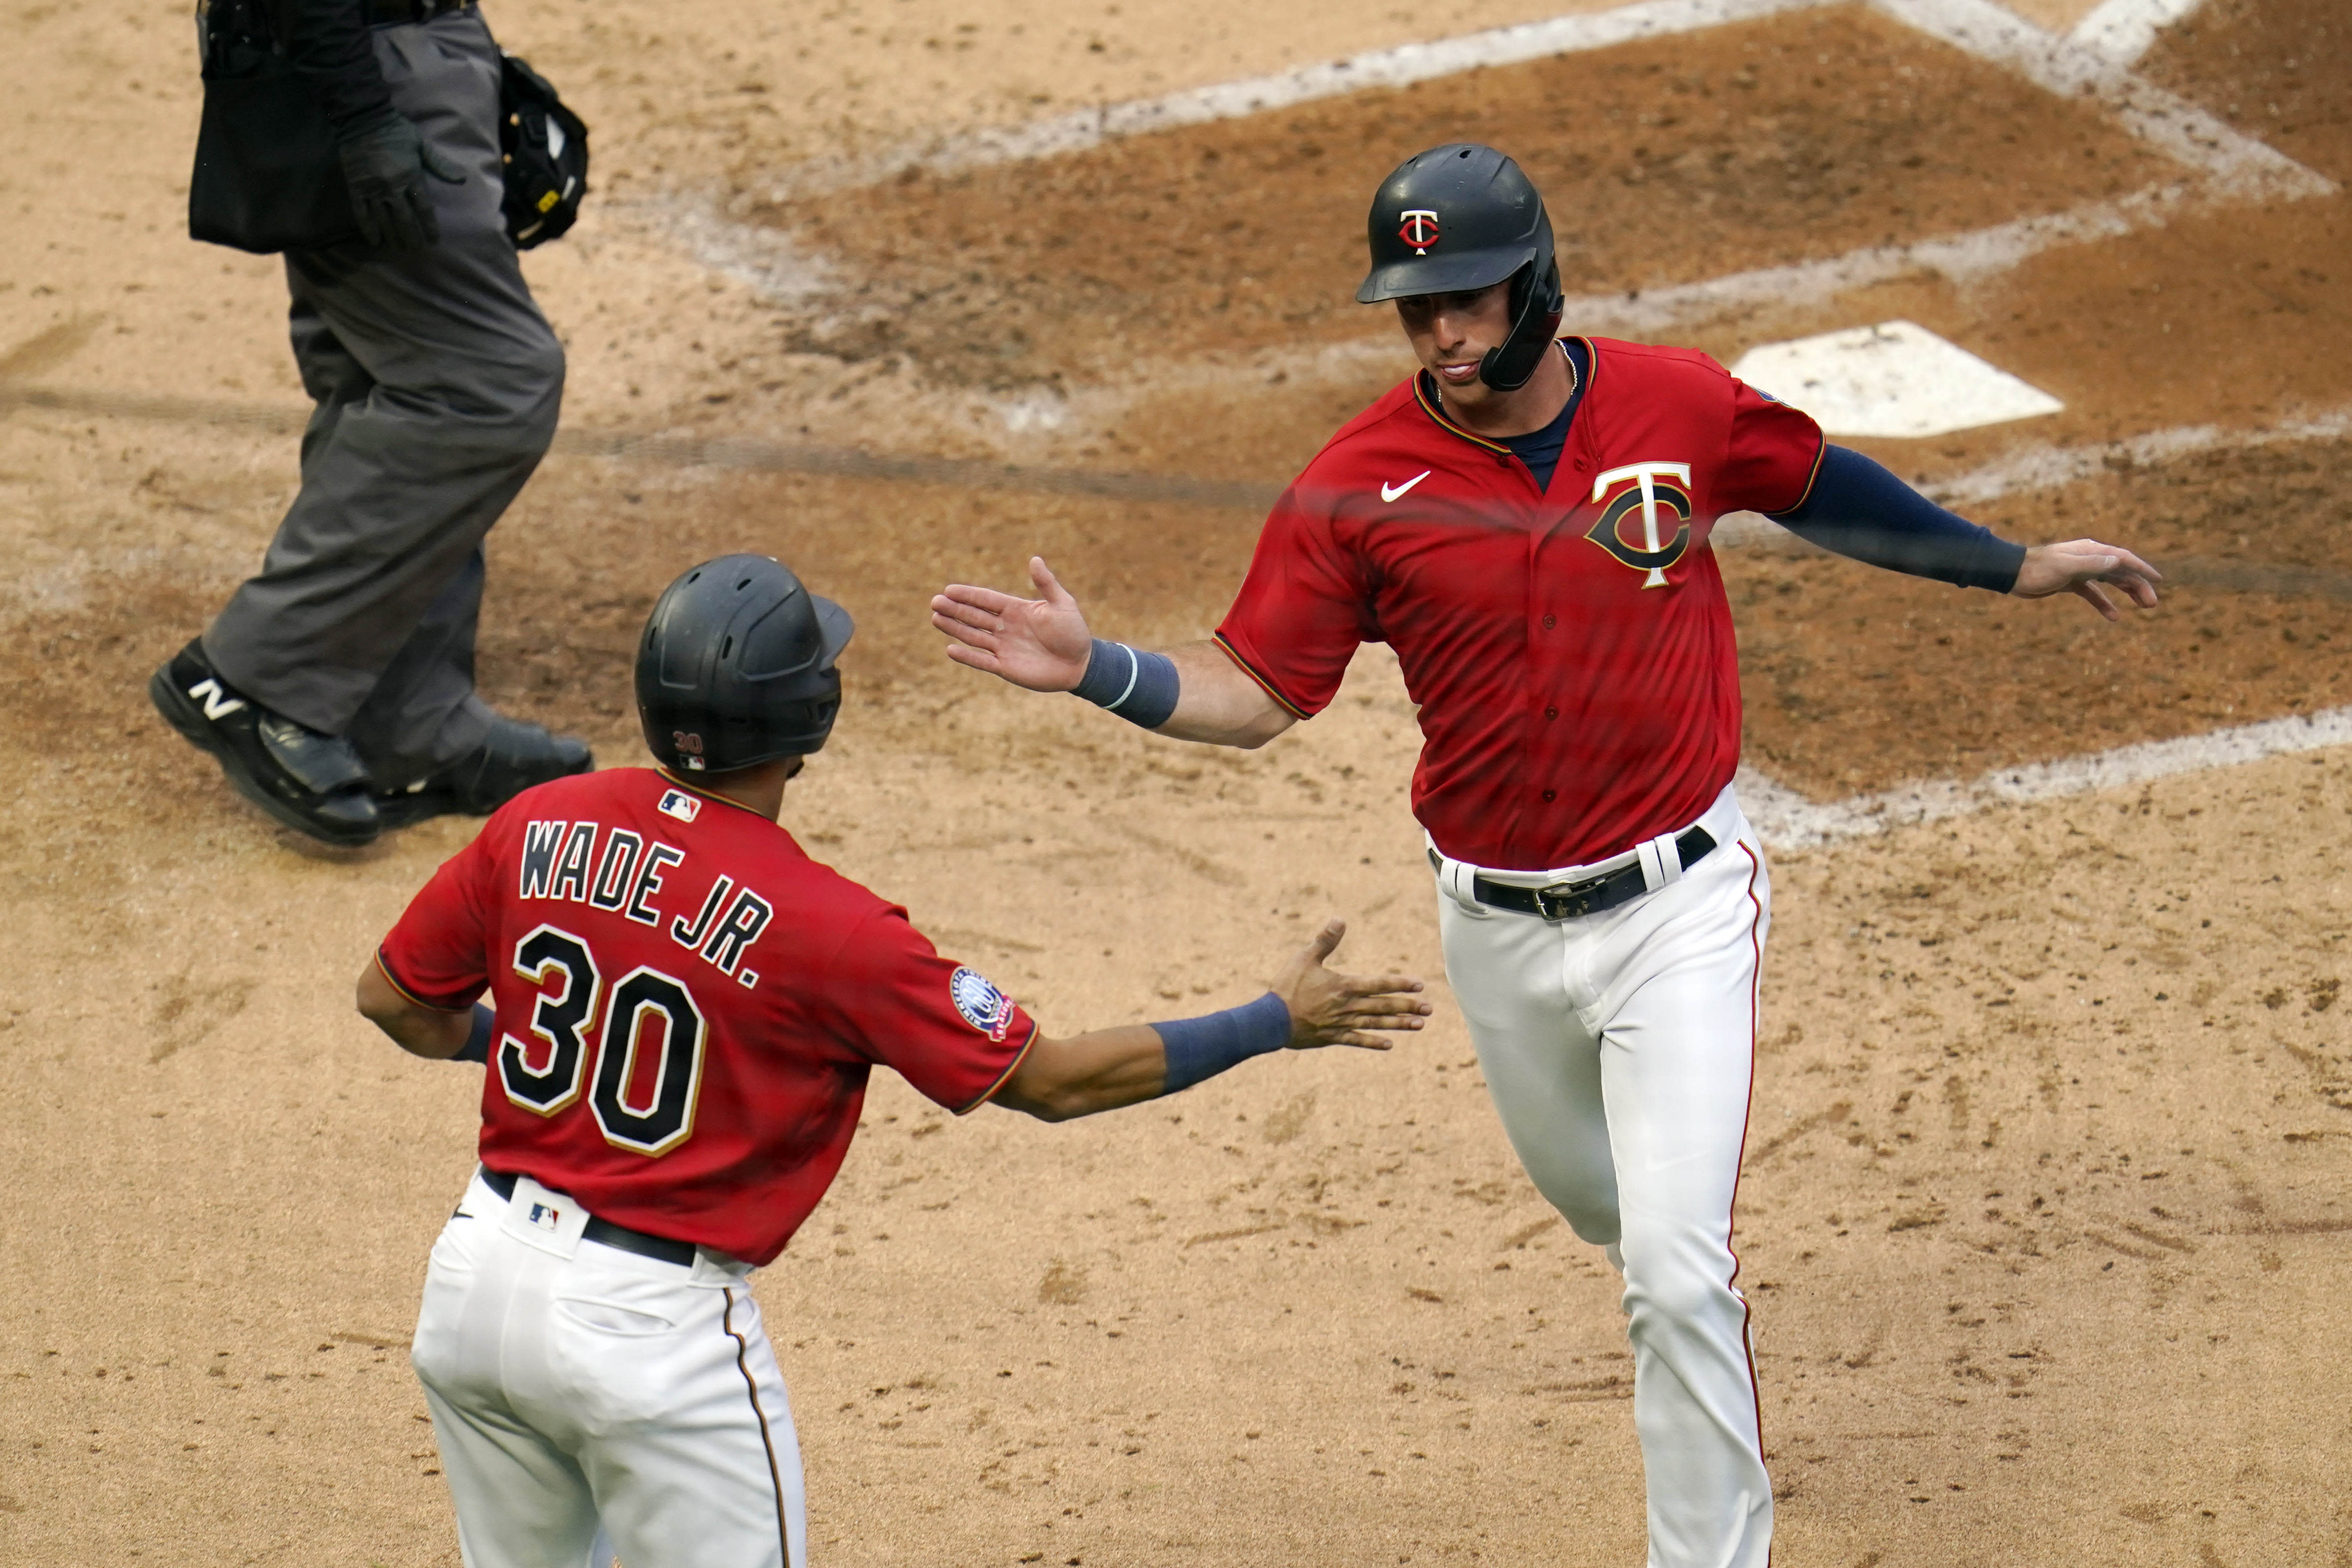 Minnesota Twins' LaMonte Wade, Jr., left, greets Brent Rooker after they both scored on a bases loaded double by Eddie Rosario off Detroit Tigers pitcher Daniel Norris in the third inning of a baseball game Monday, Sept. 7, 2020, in Minneapolis. (AP Photo/Jim Mone)